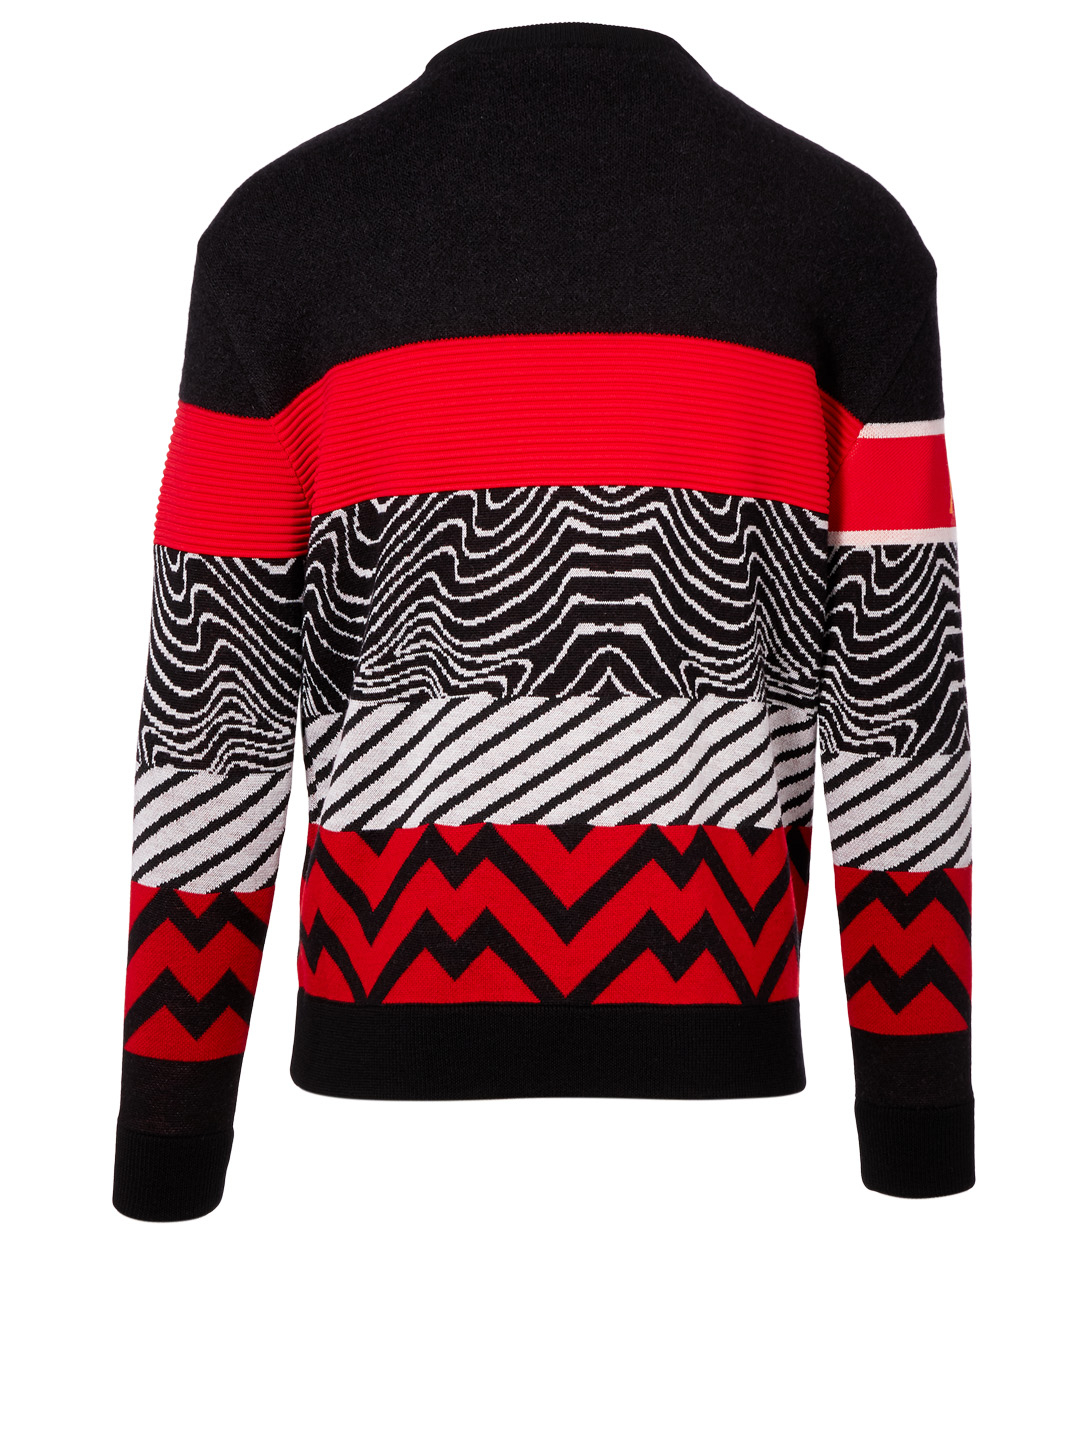 GIVENCHY Wool And Mohair Sweater In Mixed Print Men's Multi